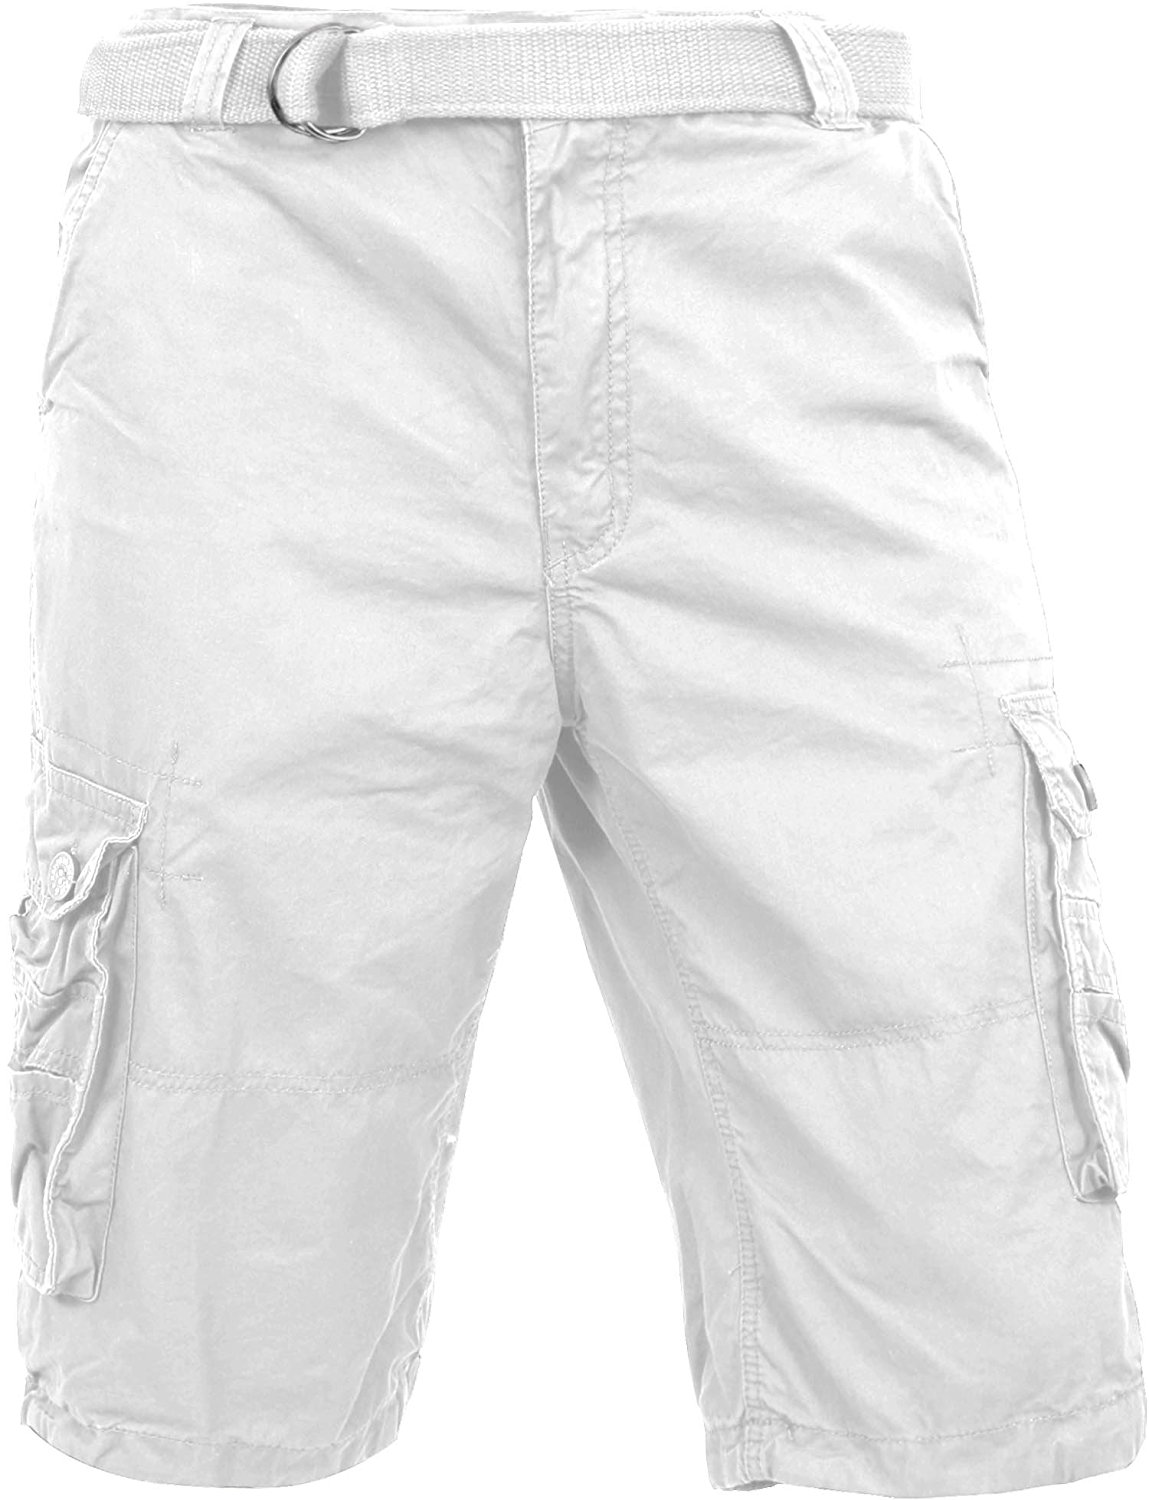 Ma Croix MX Mens Premium Cargo Shorts with Belt Outdoor Twill Cotton Loose Fit Multi Pocket Pants